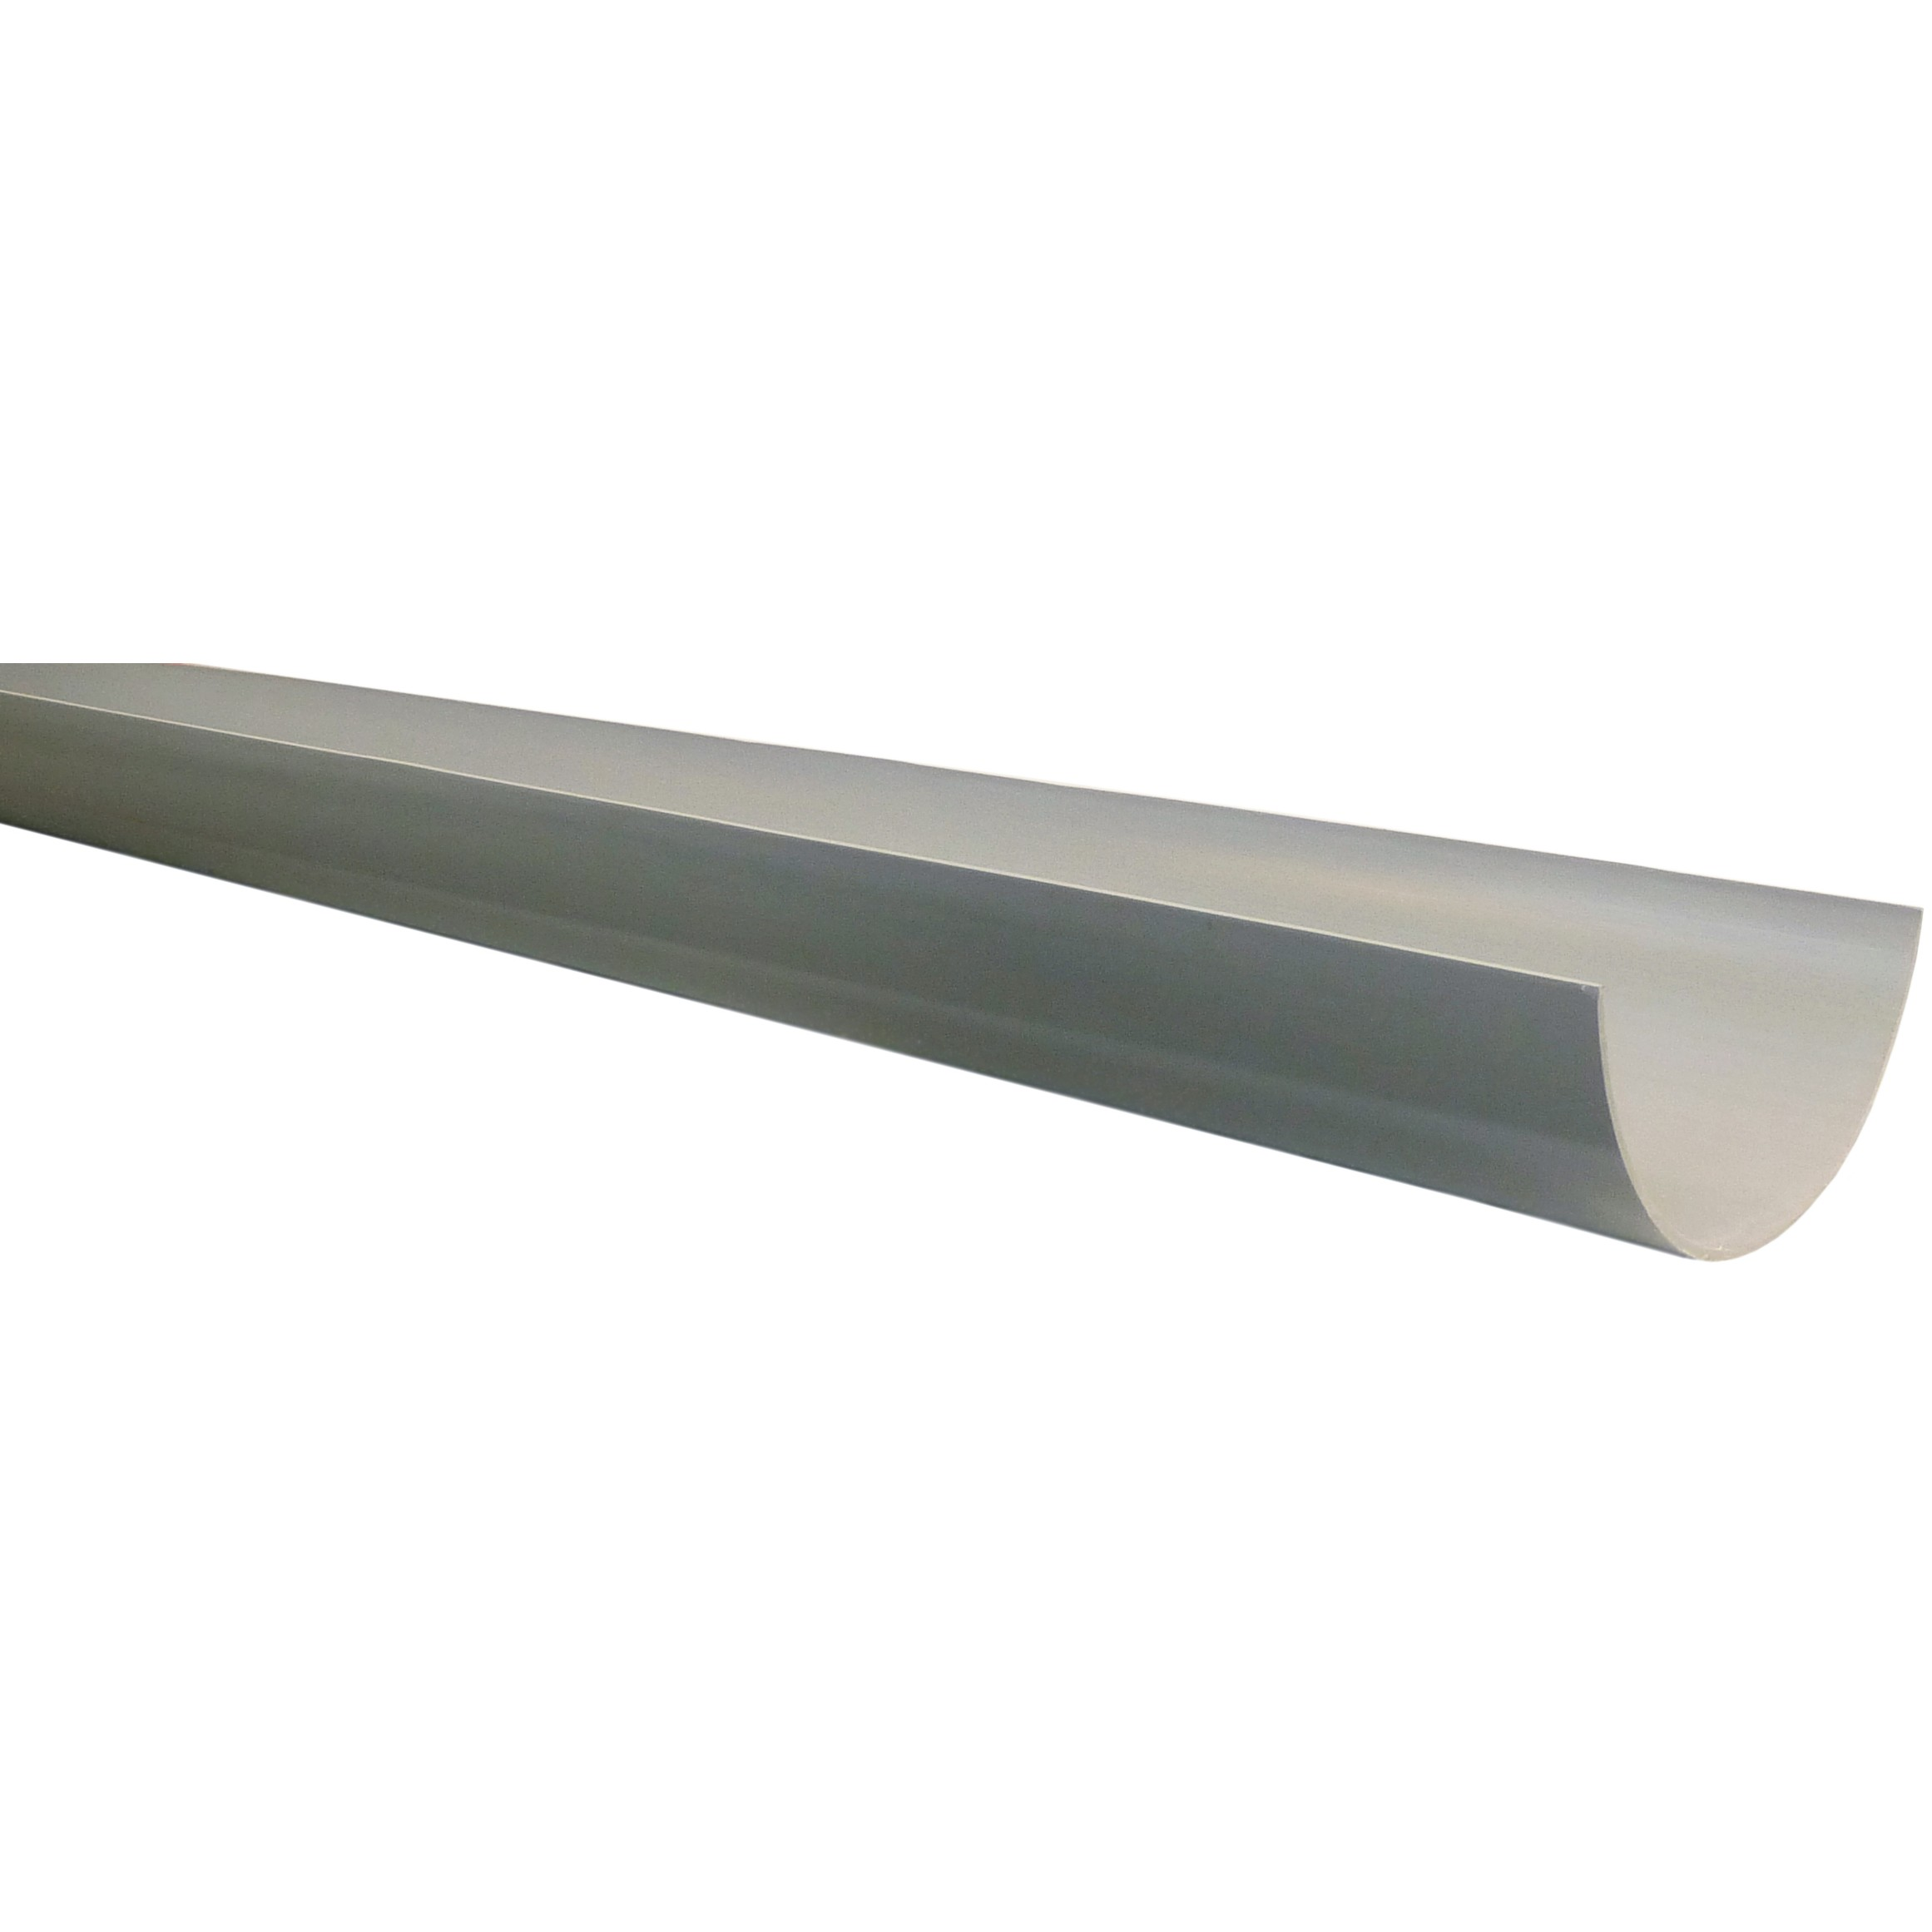 Polypipe 150mm Large Half Round Gutter - Grey, 4 metre